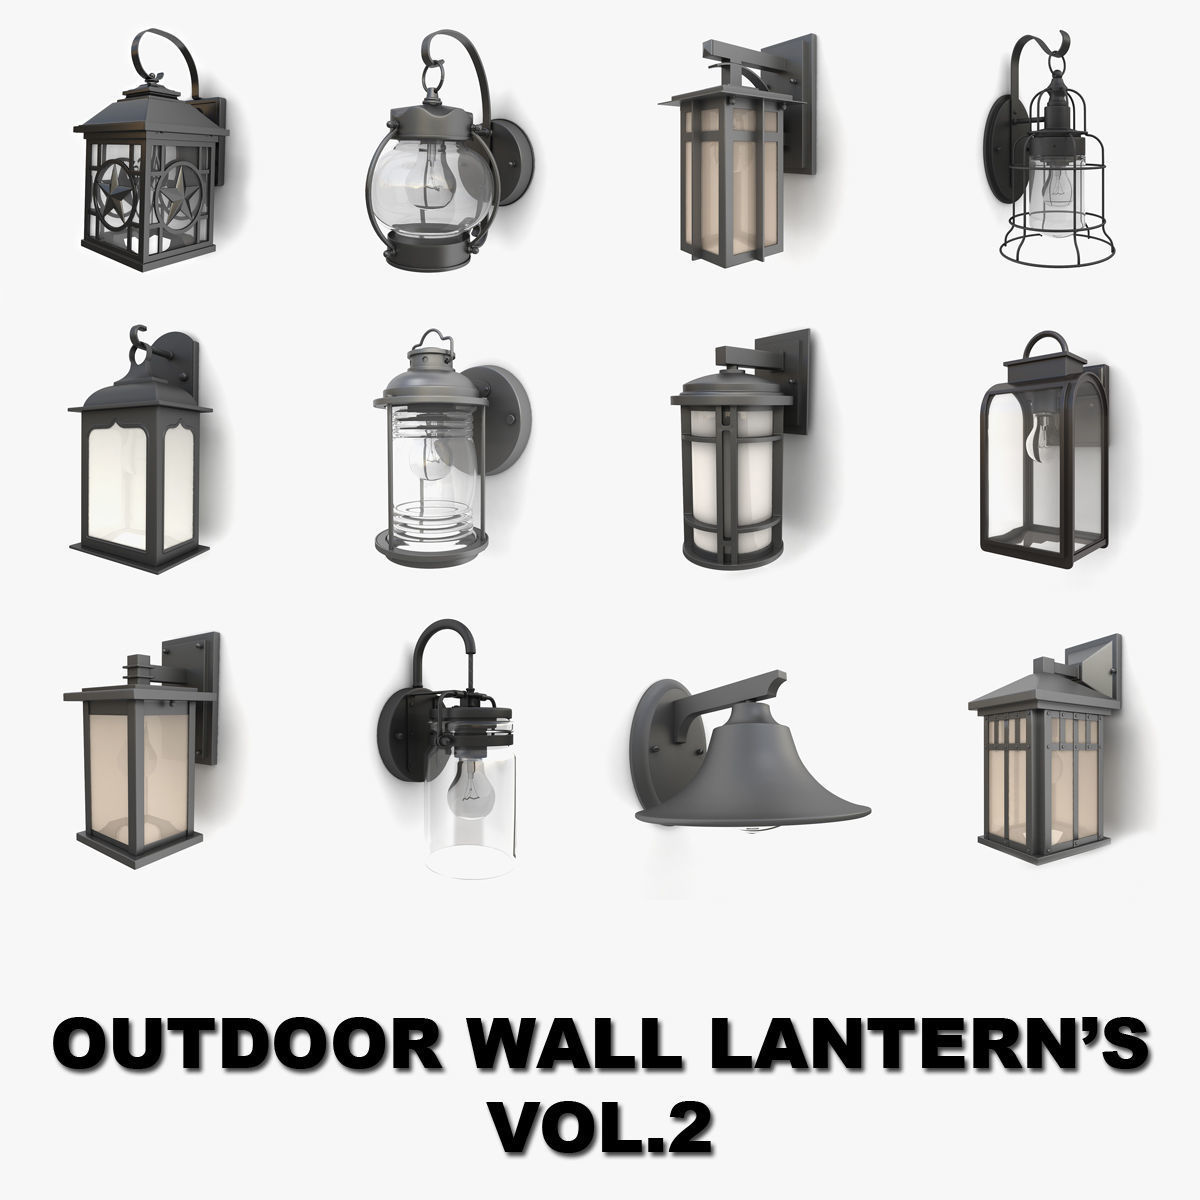 Outdoor wall lanterns collection 2